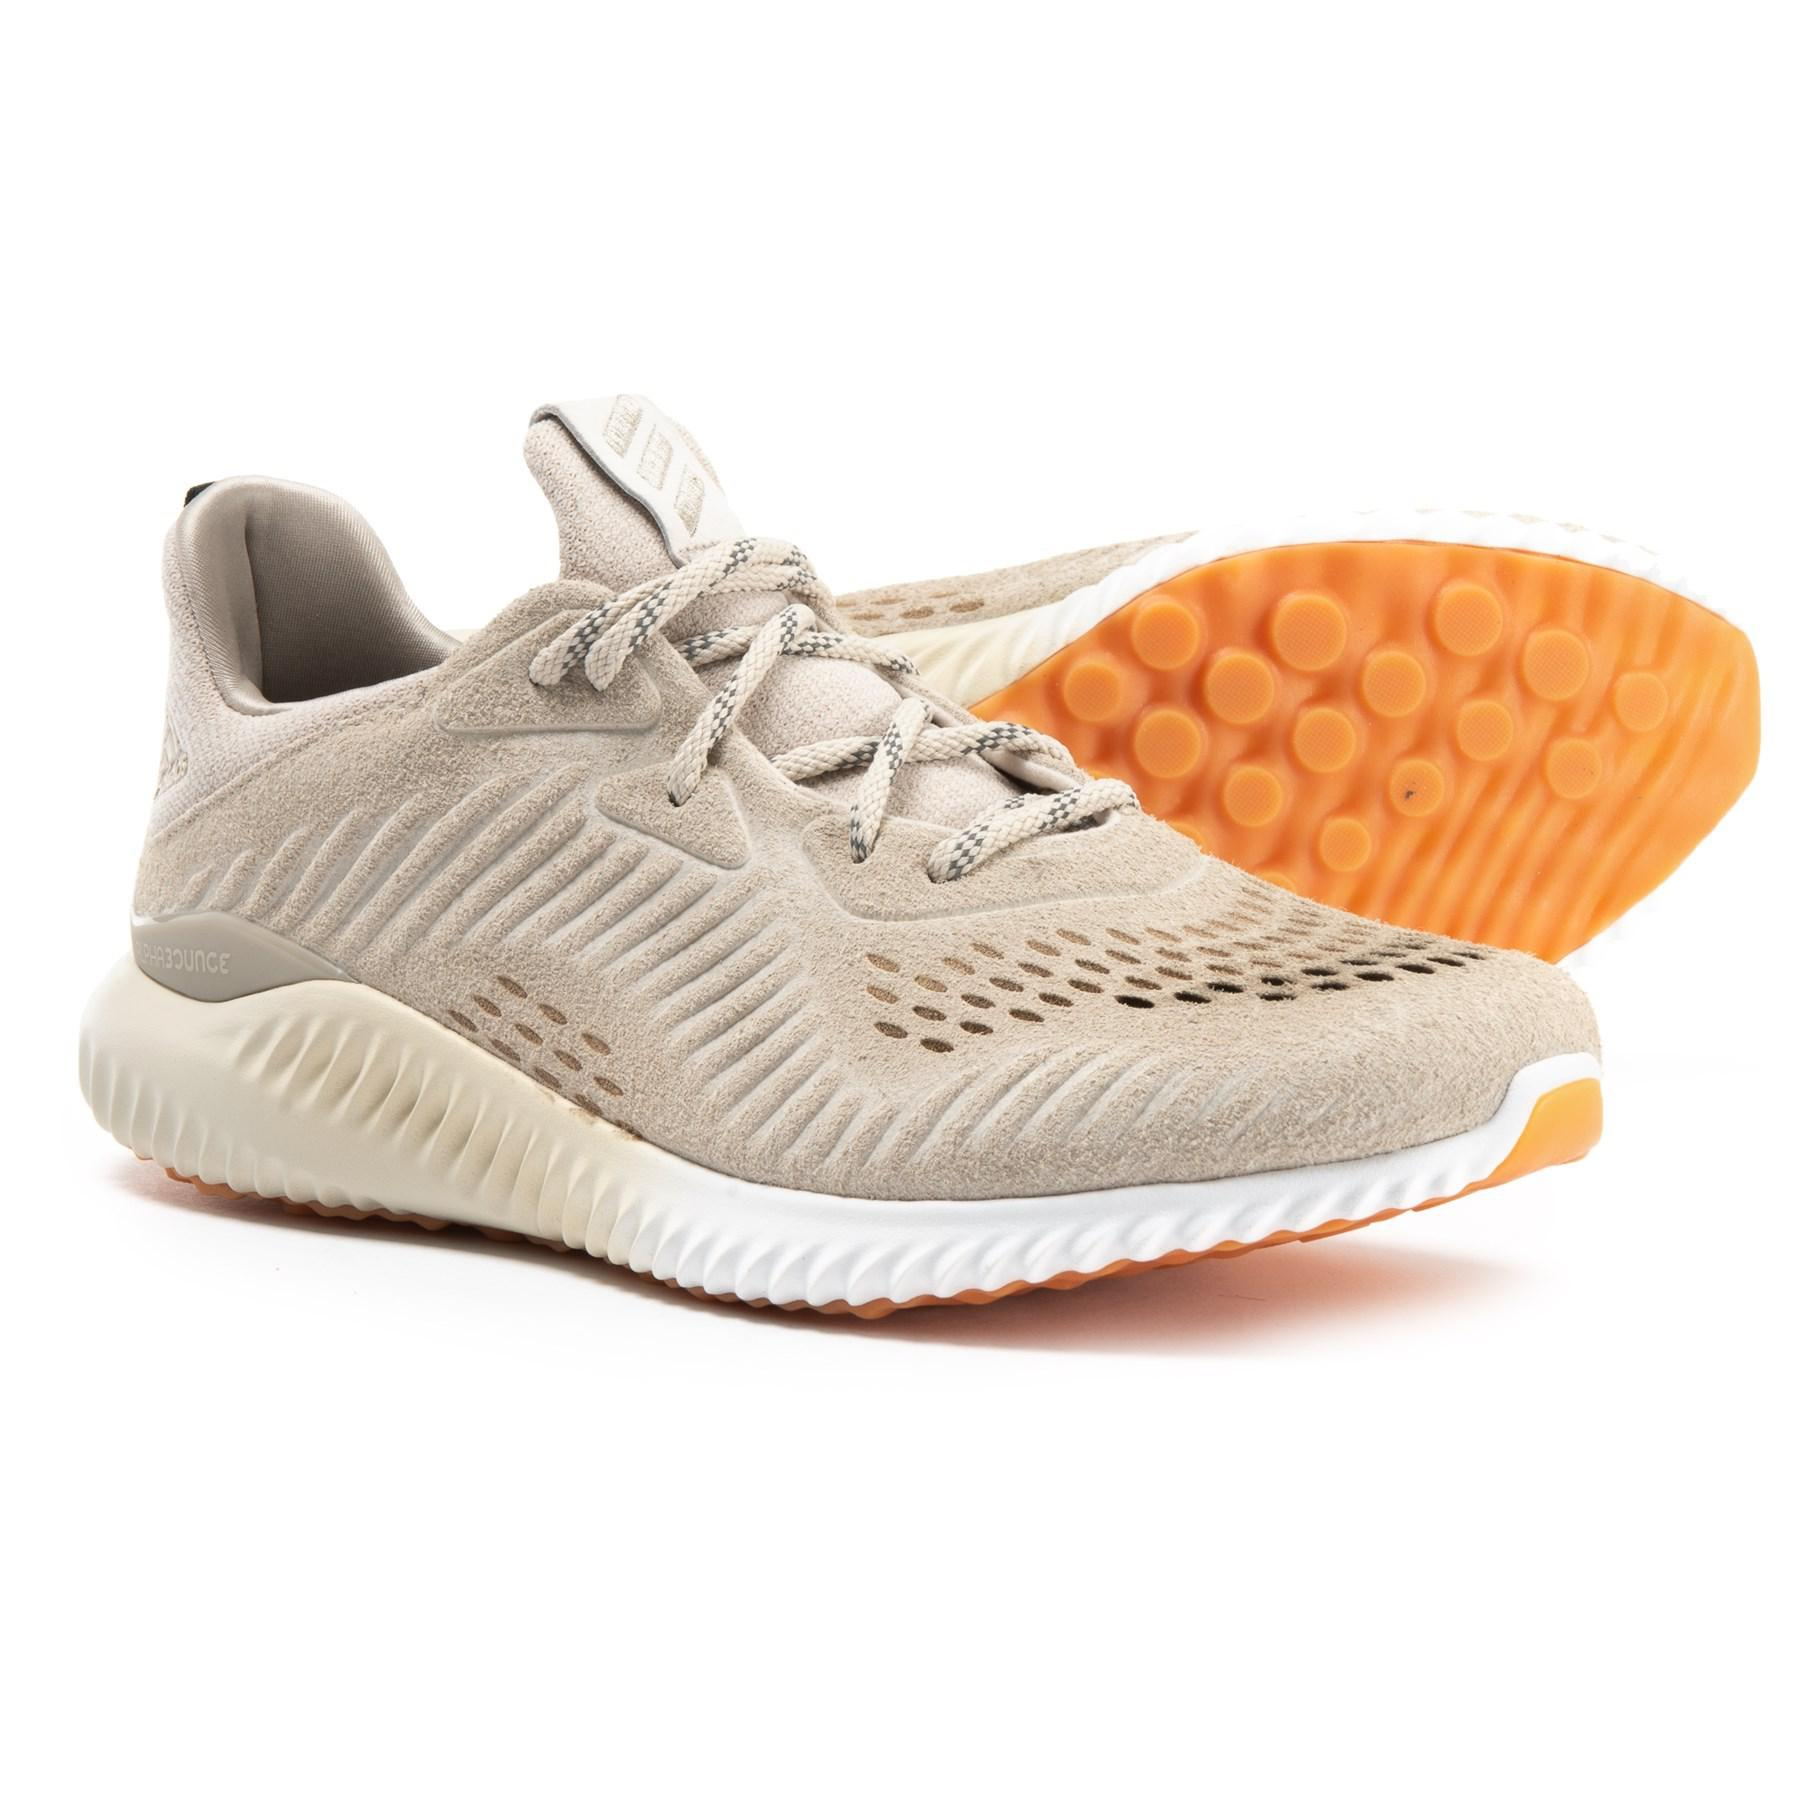 alphabounce leather shoes off 56% - www